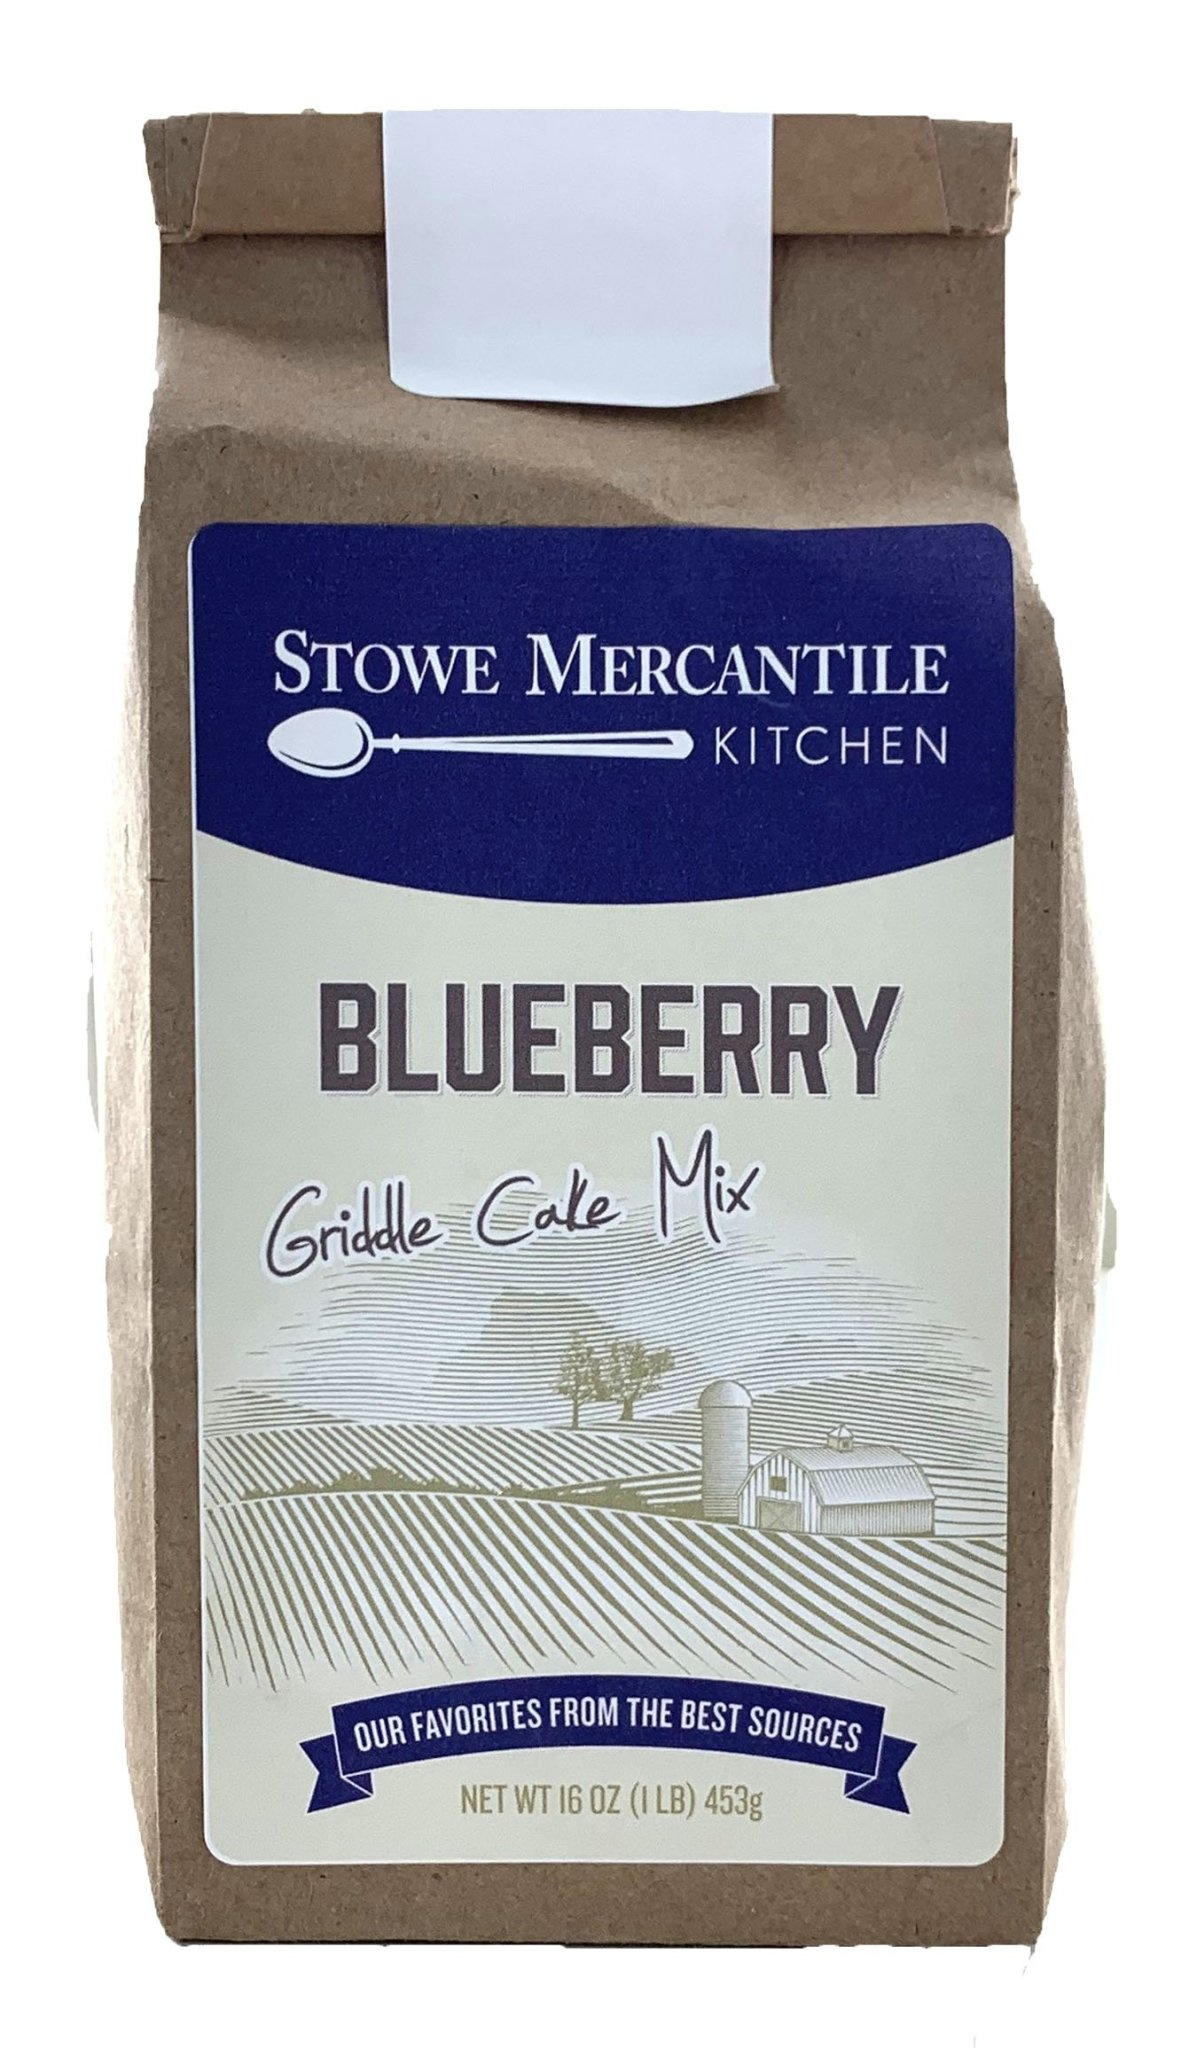 Stowe Mercantile Kitchen Griddle Cake Mix - 1lb, Blueberry